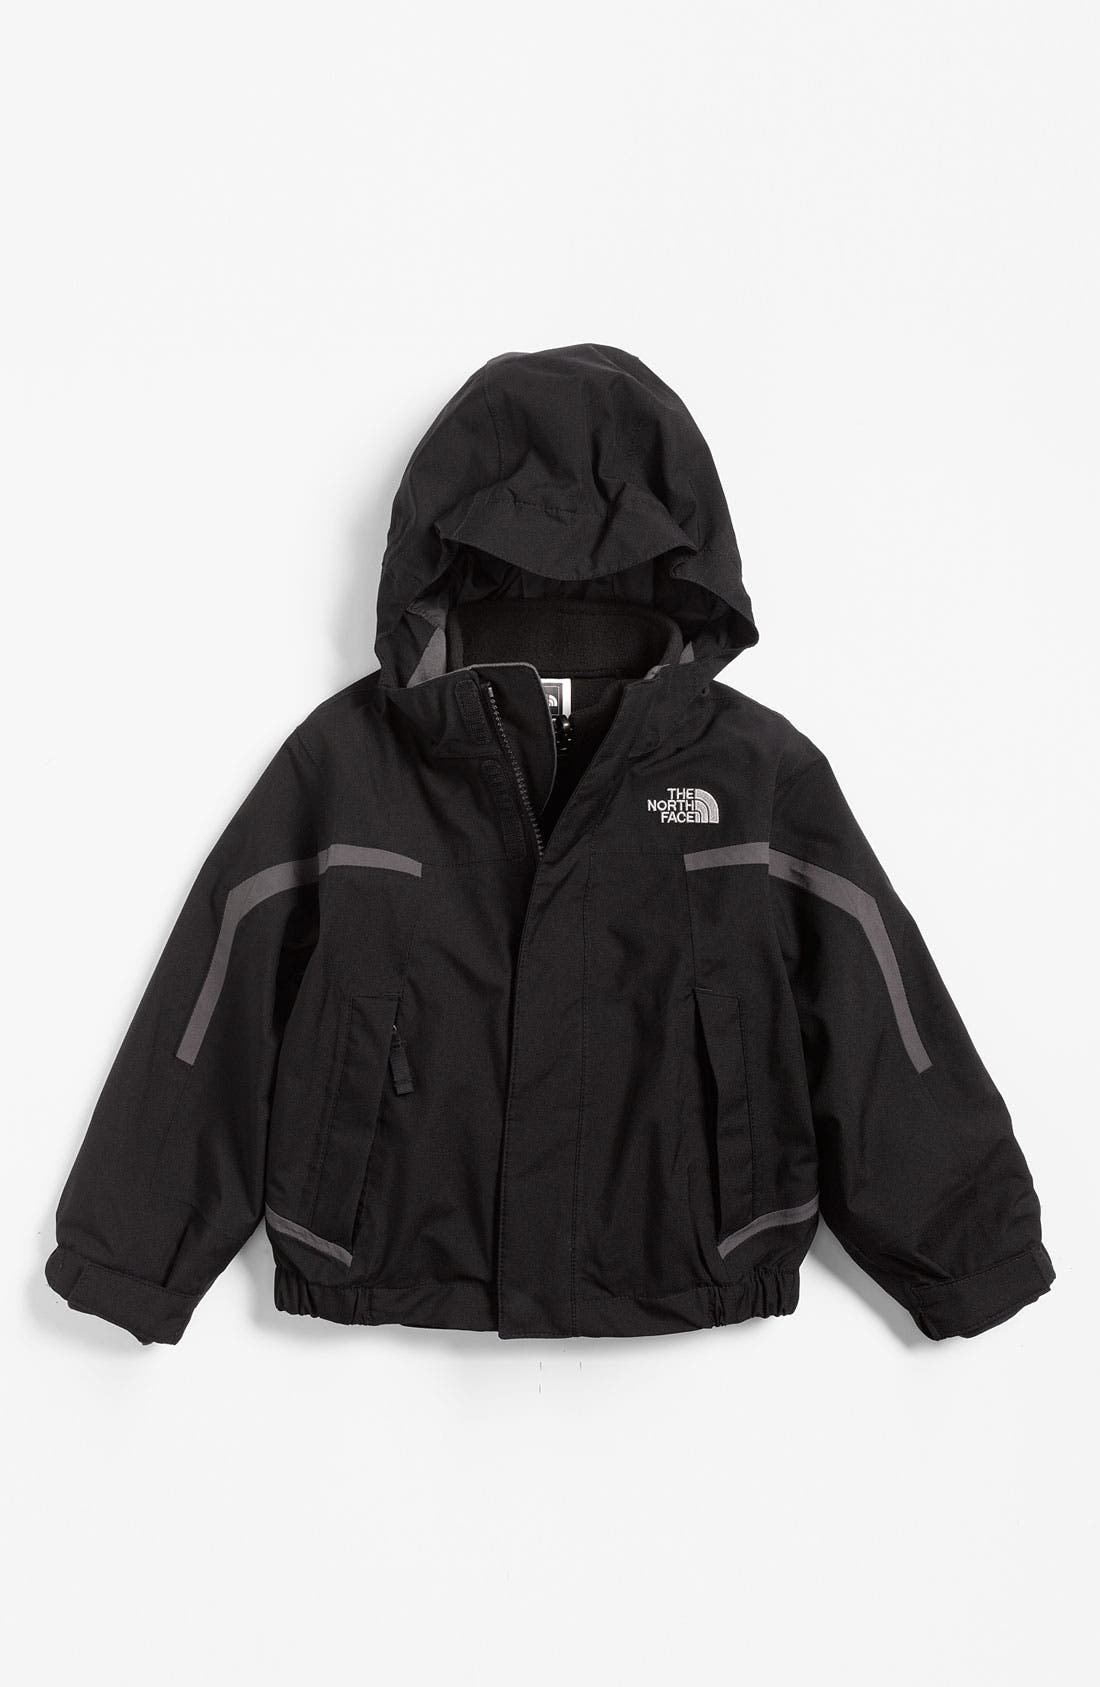 Alternate Image 1 Selected - The North Face 'Nimbostratus TriClimate®' Jacket (Toddler) (Nordstrom Exclusive)